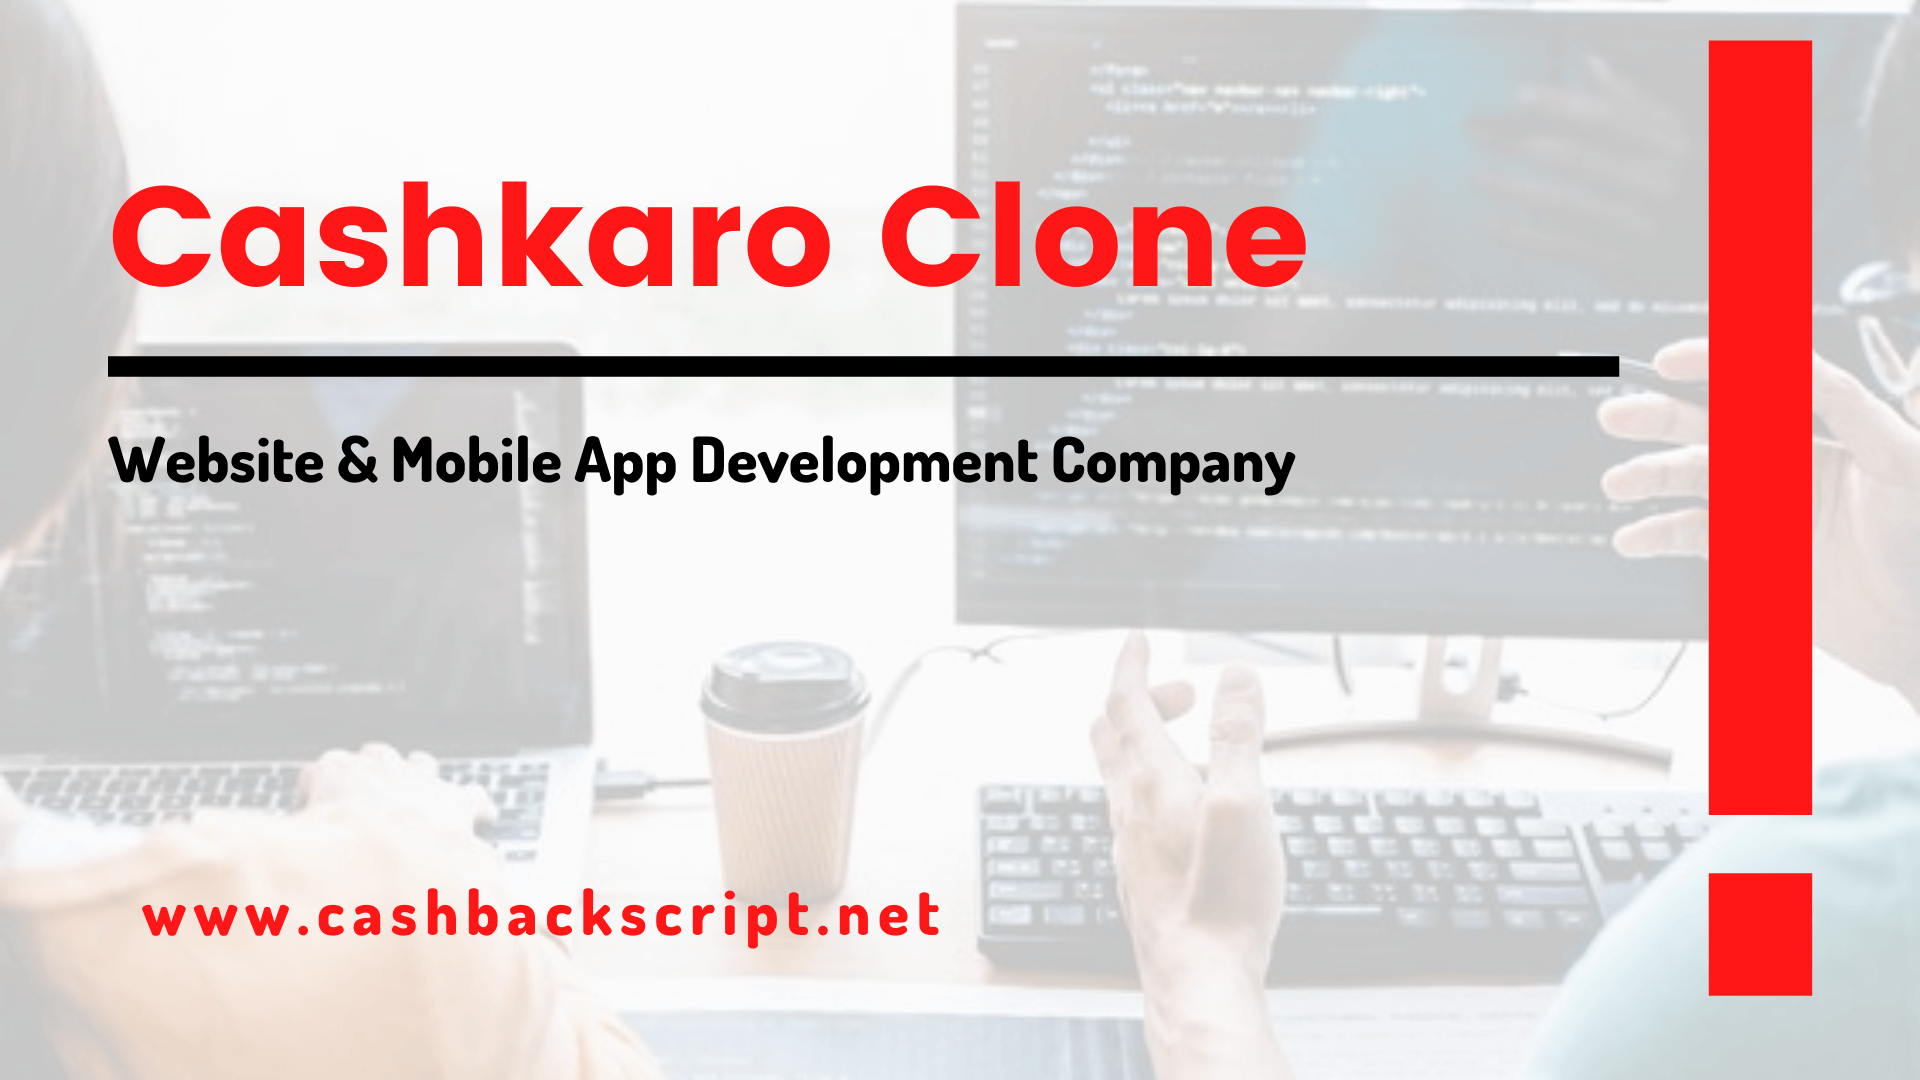 Cashkaro Clone Website & Mobile App Development Company